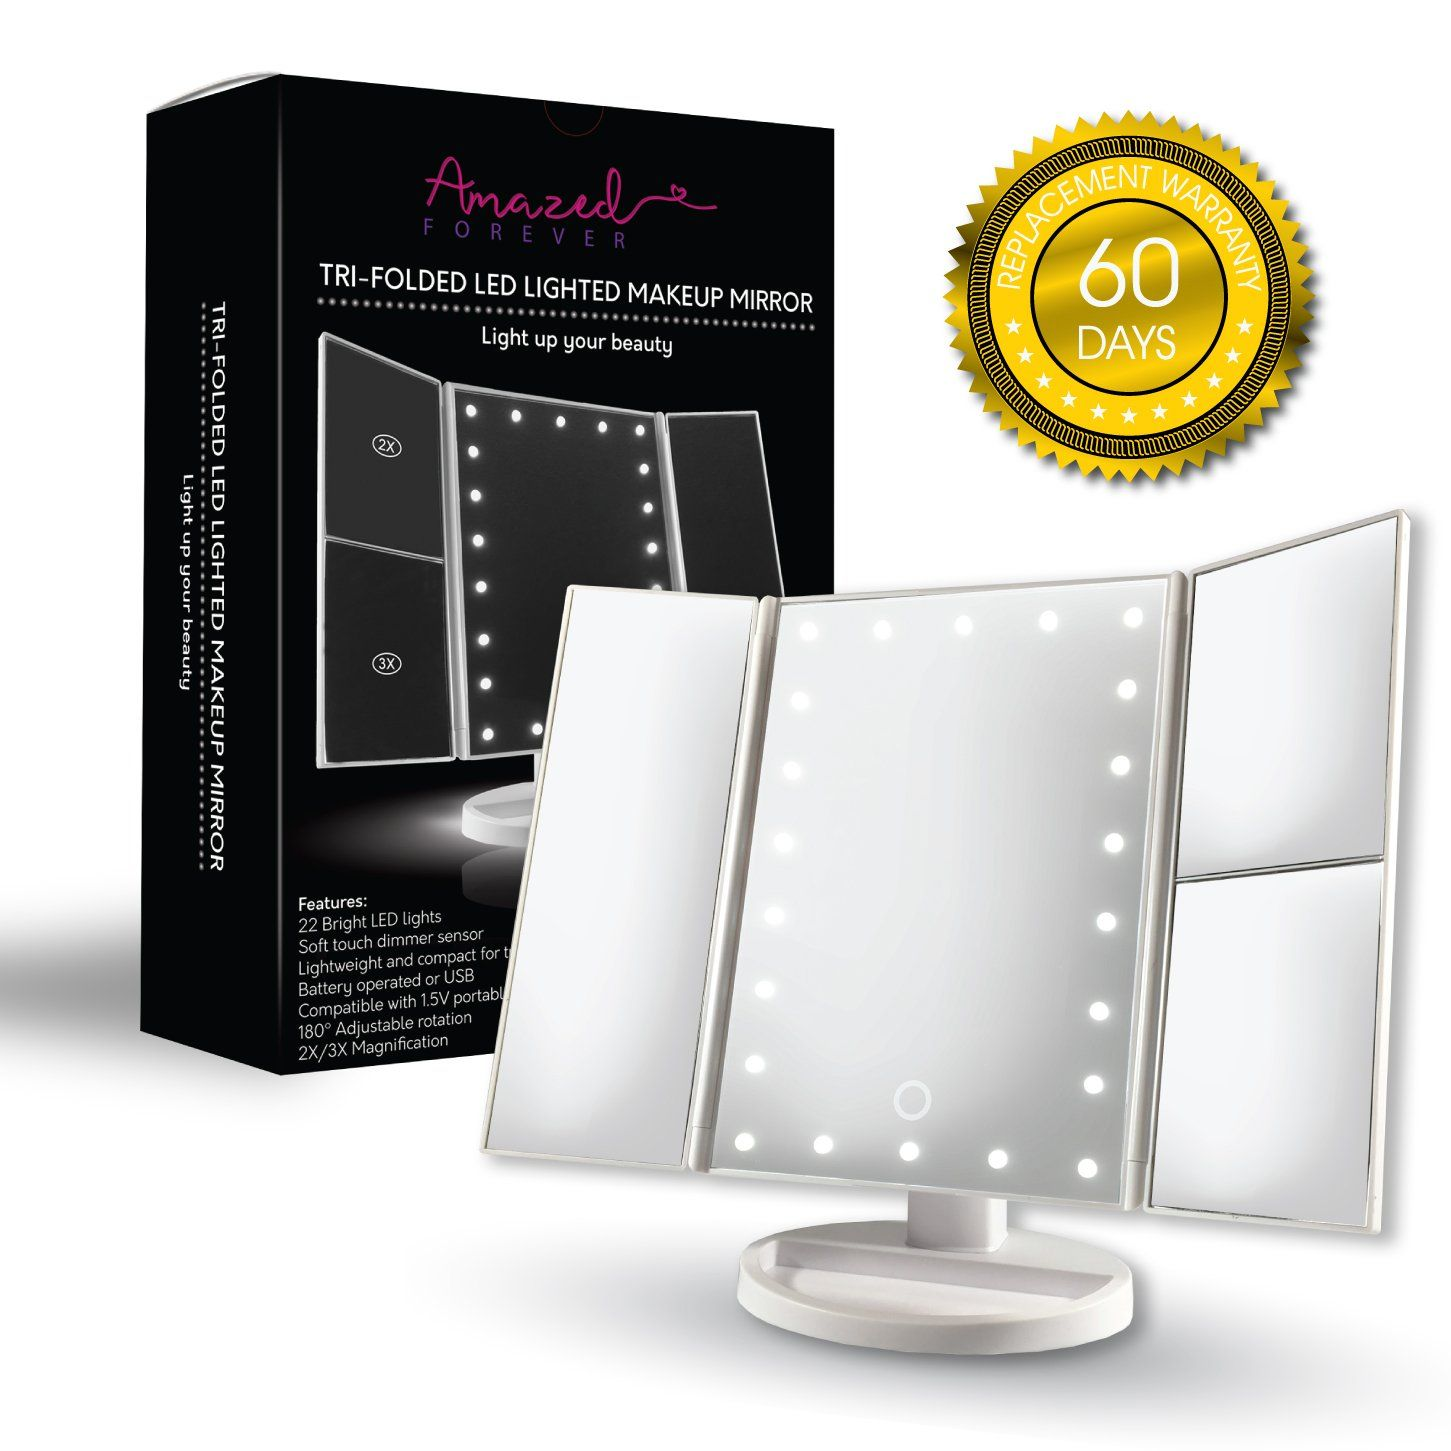 LED Lighted Mirror with 22 LED Lights Makeup Mirror with